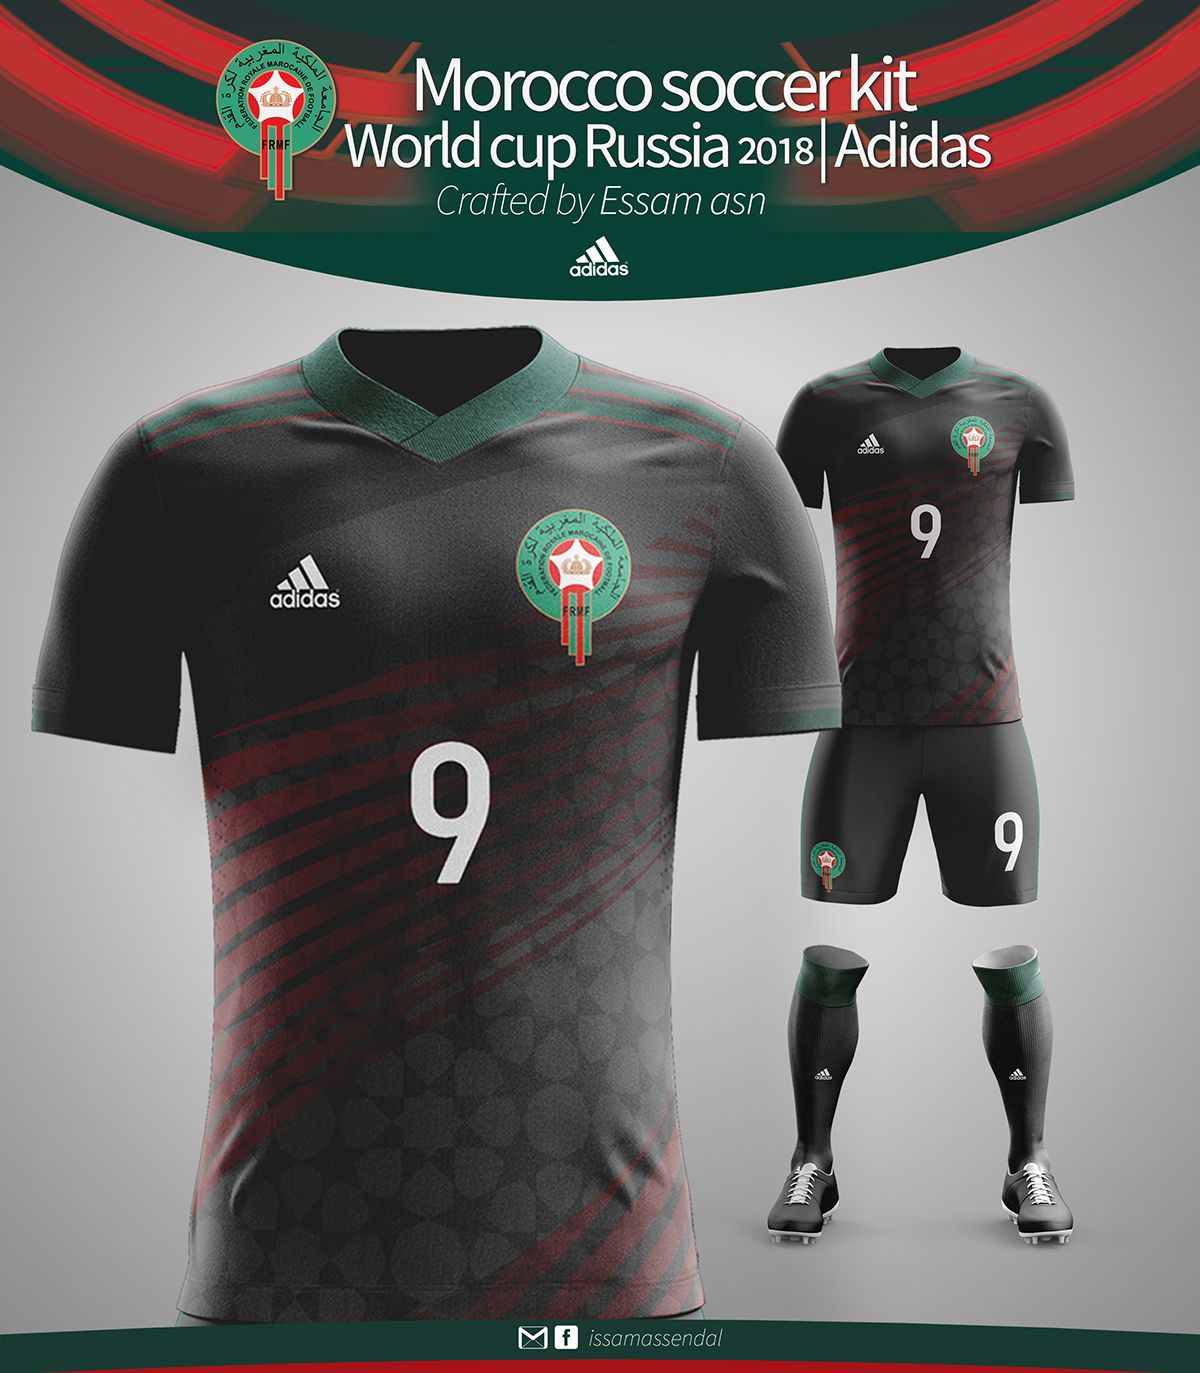 8f85ac688 MOROCCO SOCCER KIT WORLD CUP RUSSIA 2018 ADIDAS CRAFTED on Behance ...